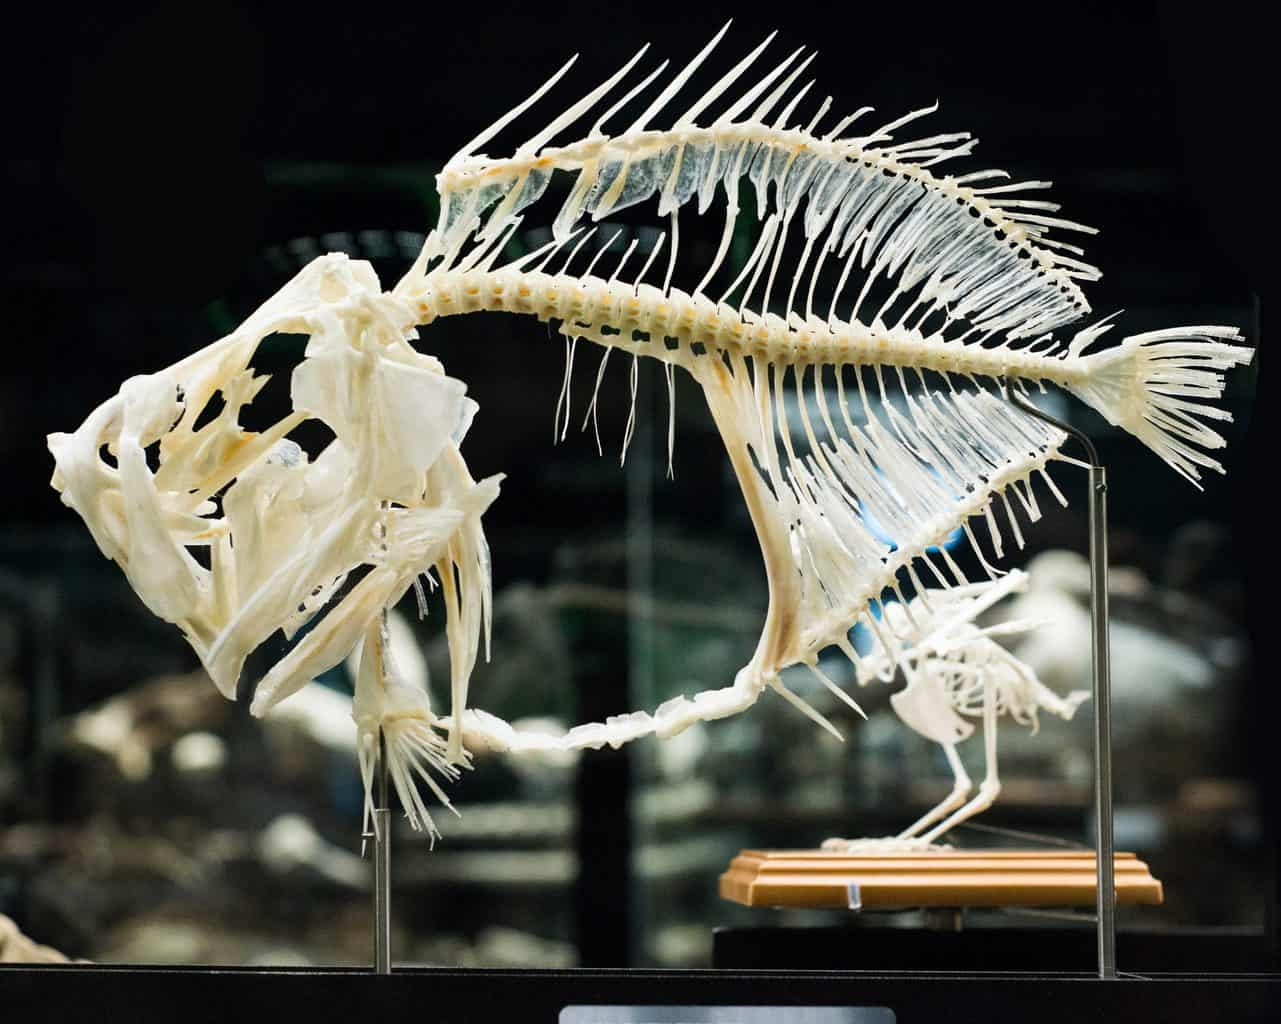 One of the fish skeletons that you'll find on display at the Age of Fishes Museum in New South Wales, Australia.